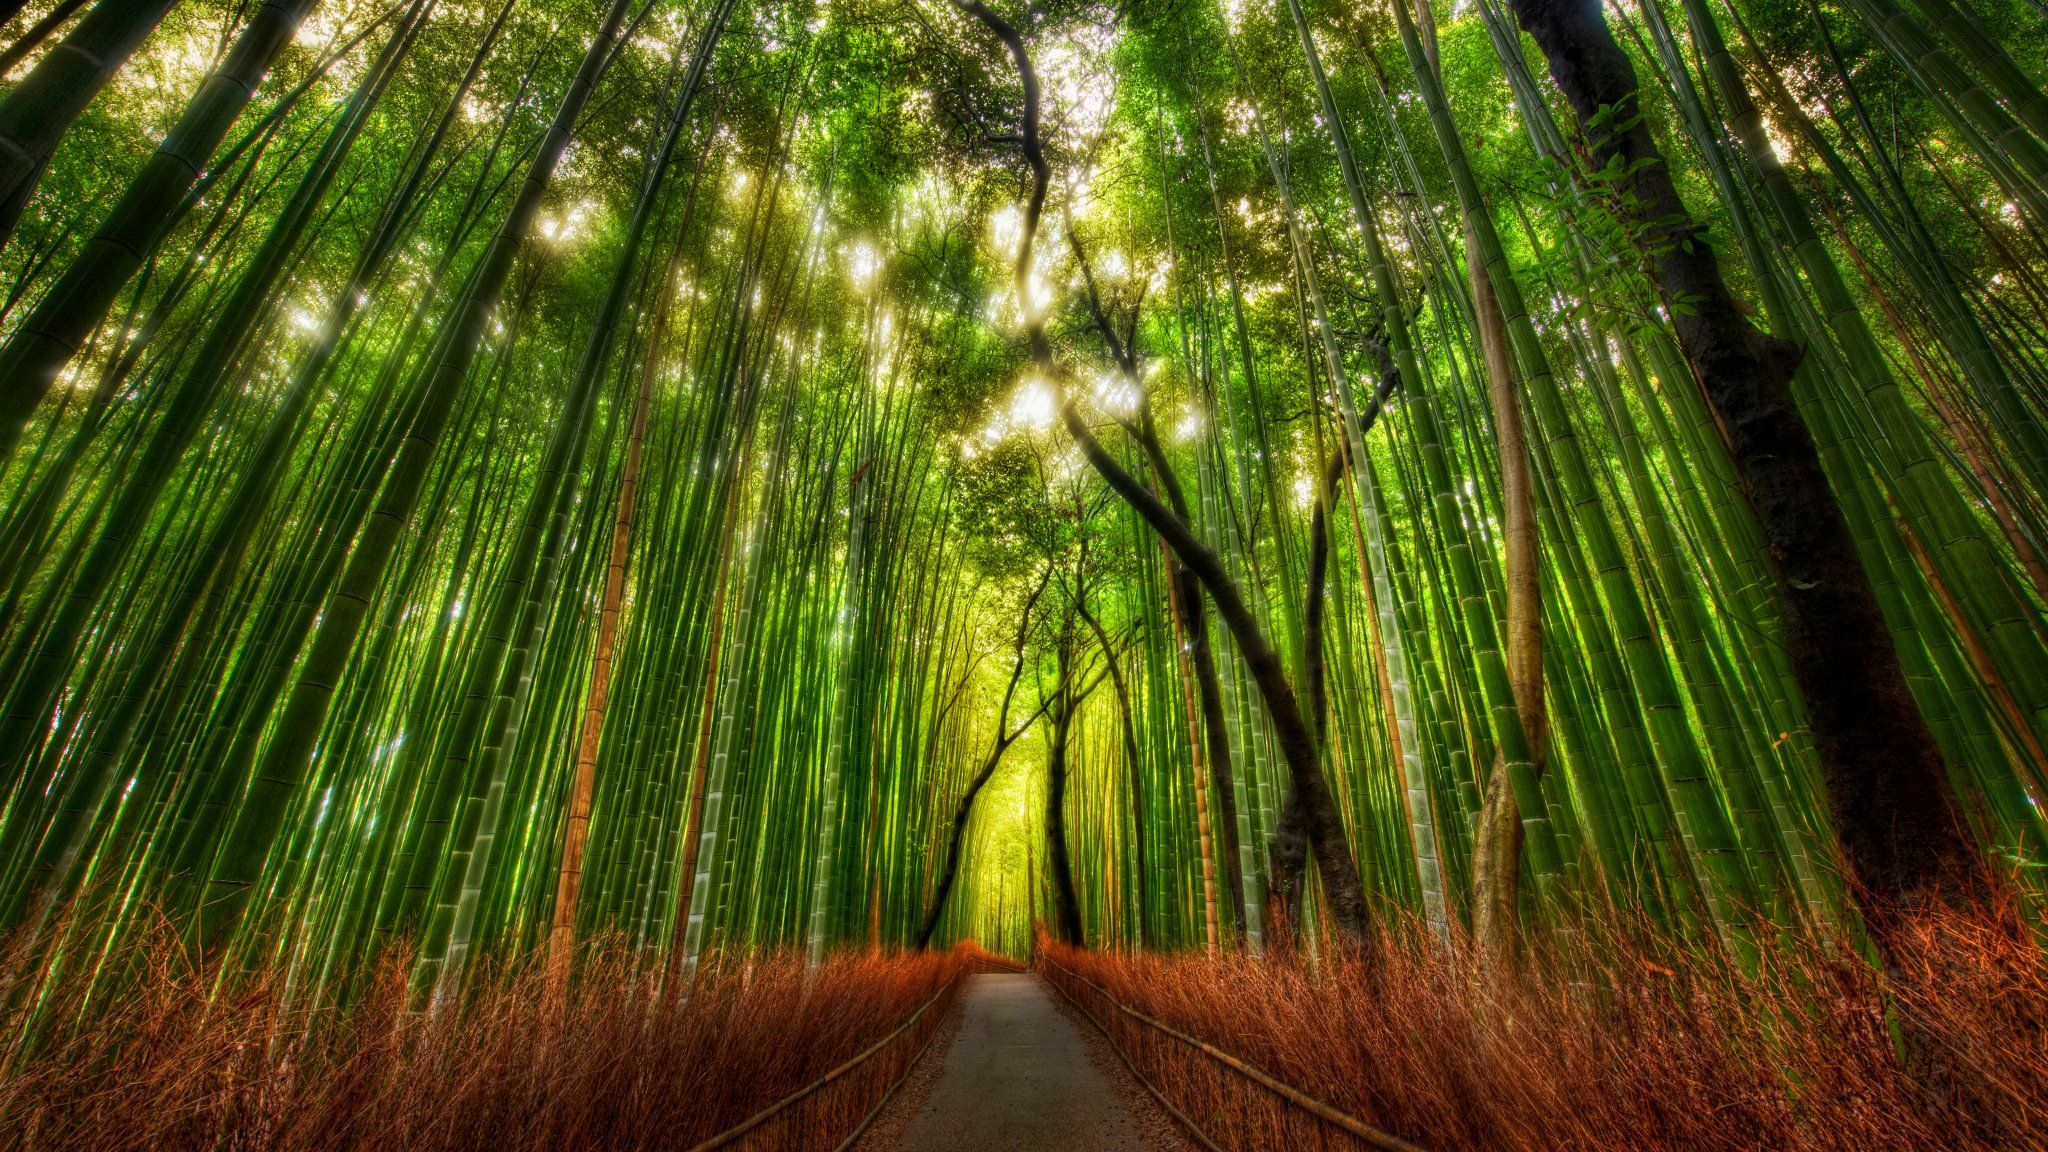 Download Free Bamboo Forest Kyoto Japan Desktop Wallpaper Hd For Mobile Iphone Pc Tablet